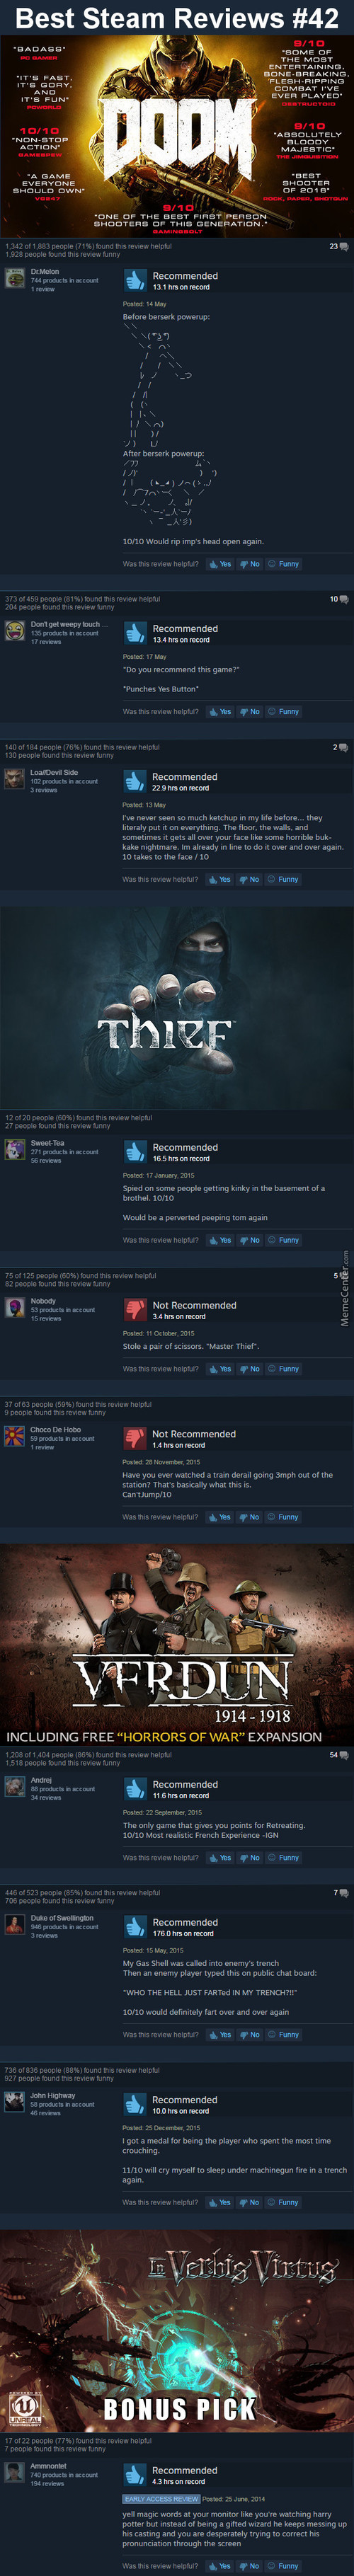 Best Steam Reviews #42 - Yer A Wizard 'arry